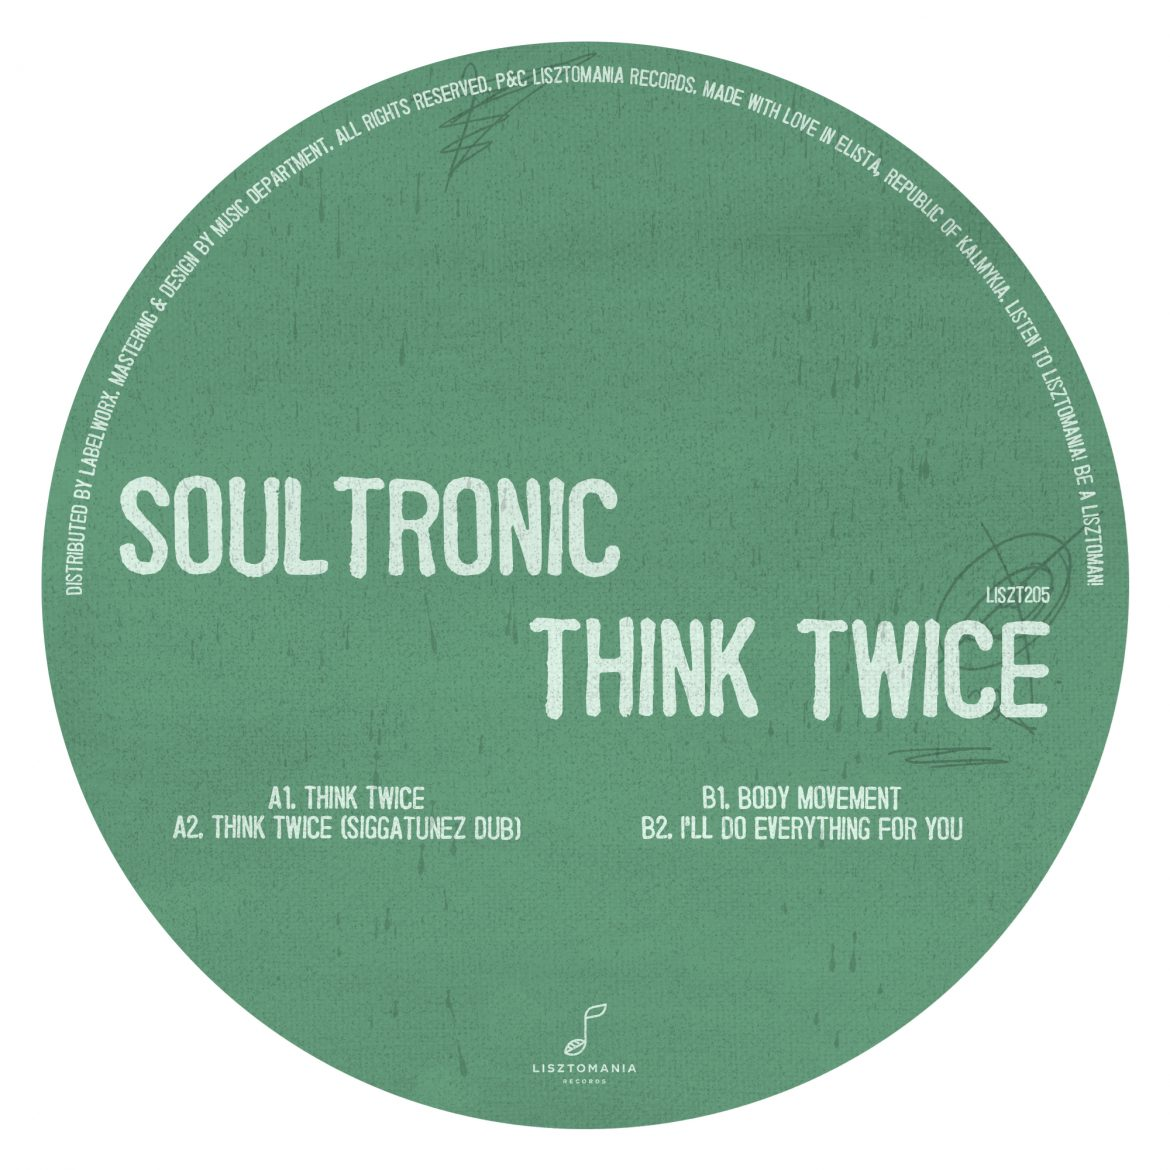 Soultronic - Think Twice